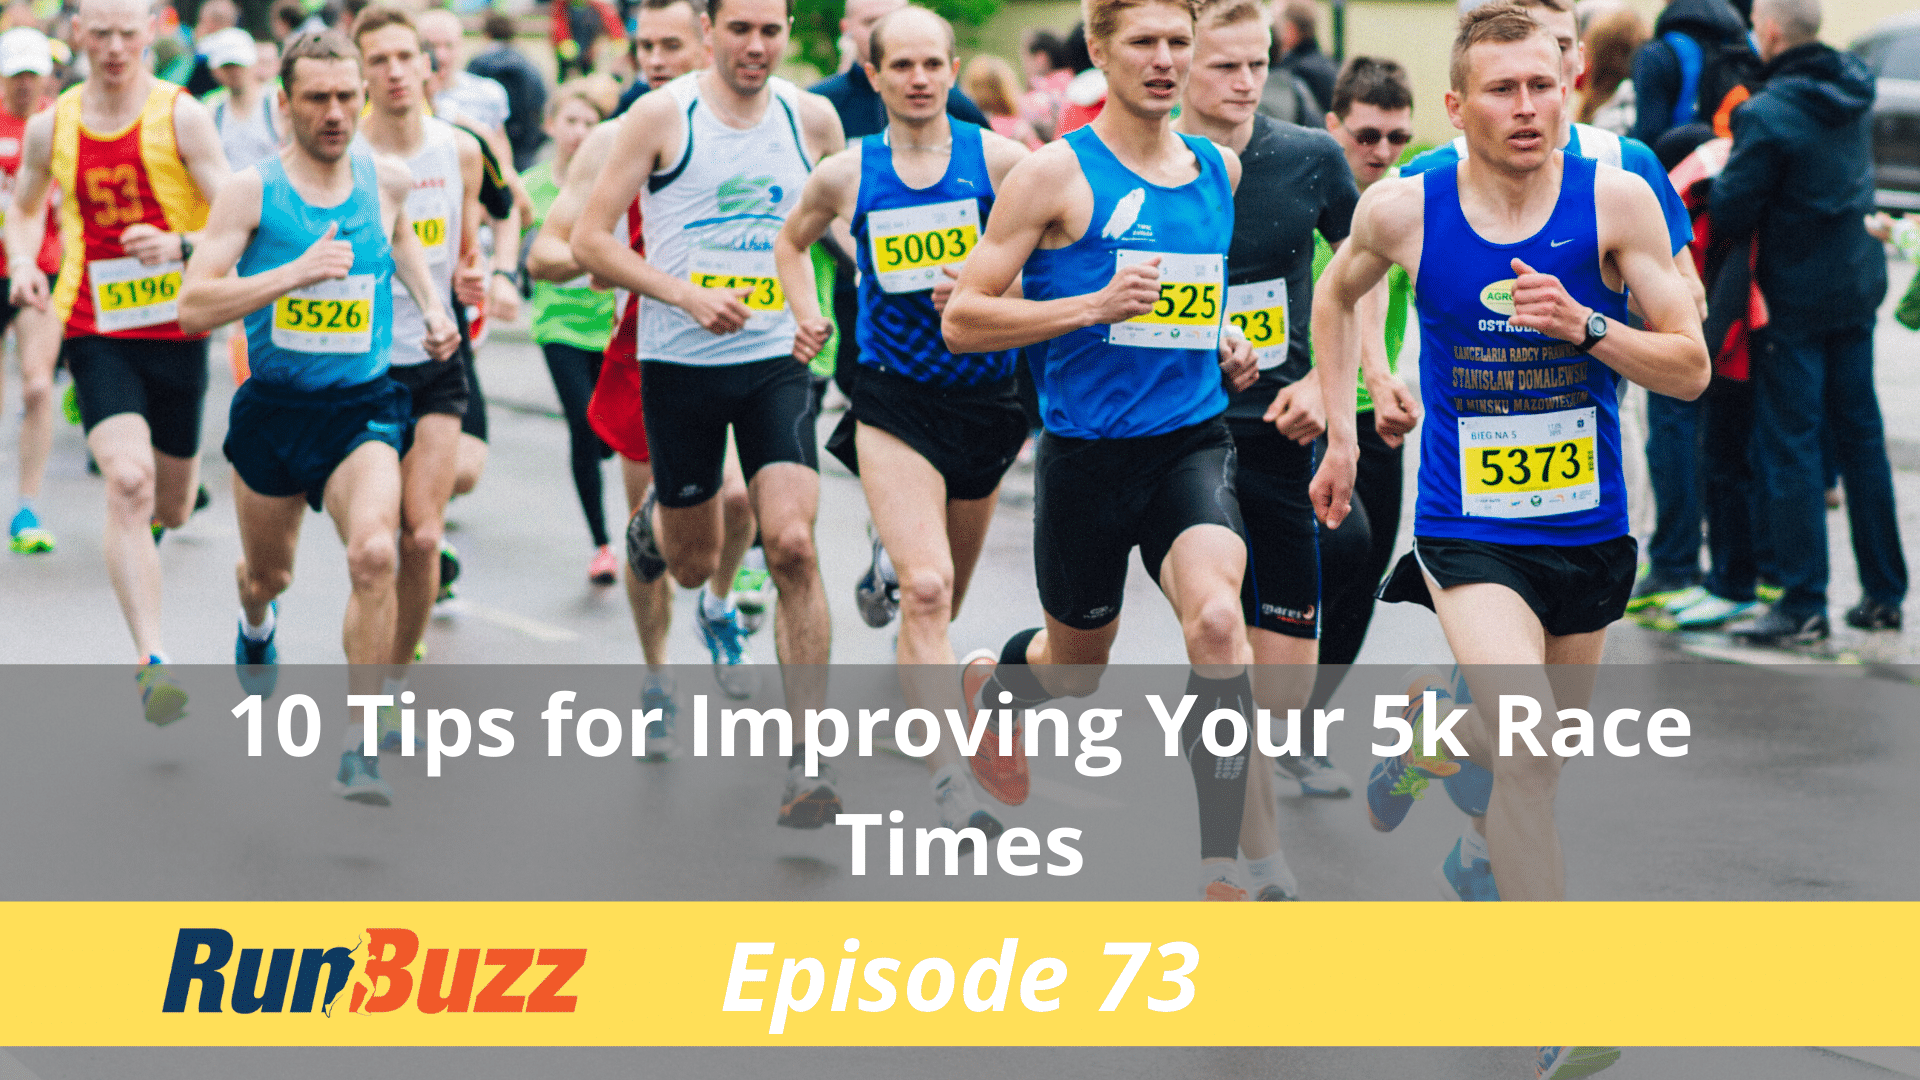 10-Tips-for-Improving-Your-5k-Race-Times